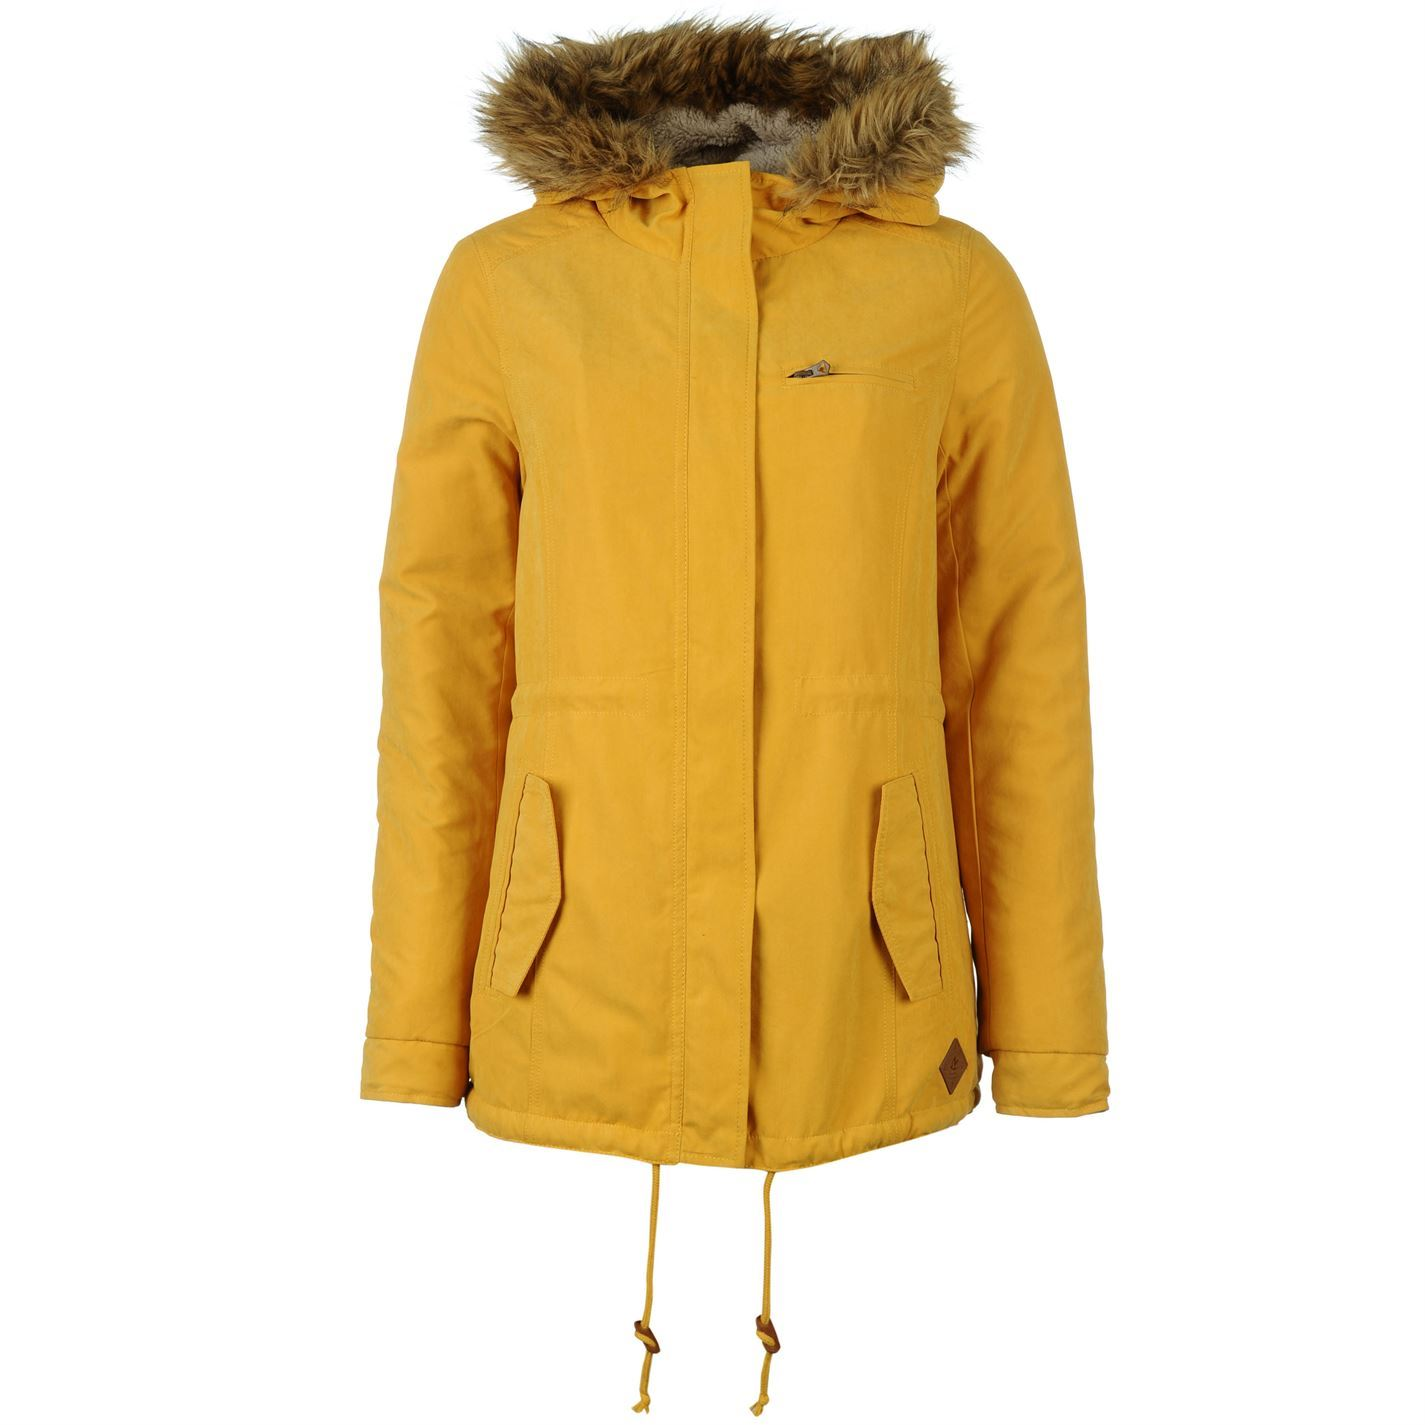 Short Parka Jacket Womens | Fit Jacket